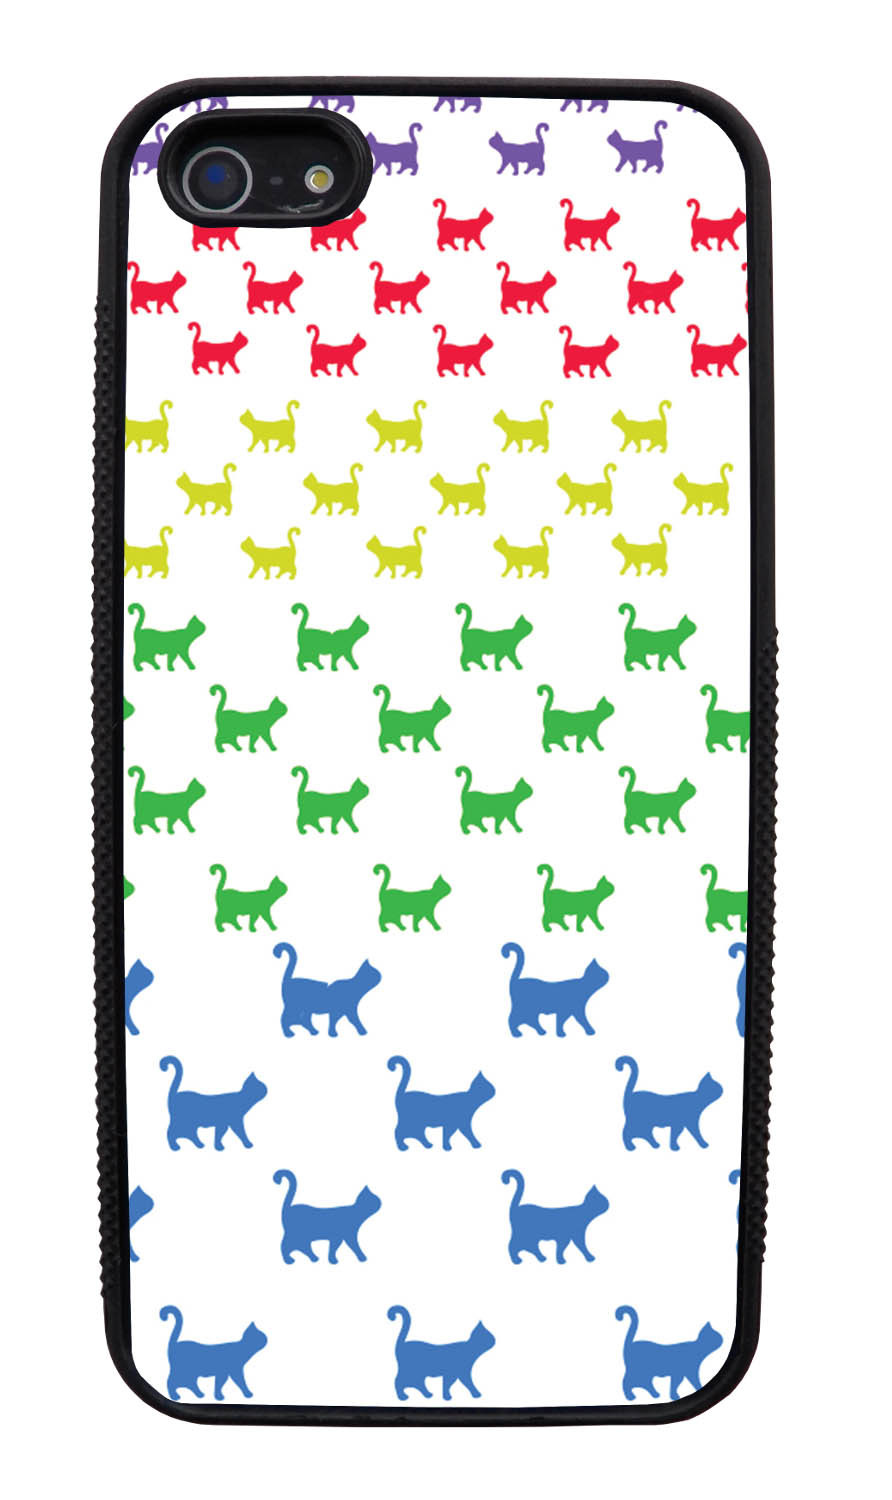 Apple iPhone 5 / 5S Cat Case - Rainbow Colored Walking Cat on White - Simple Stencils Cutout - Black Slim Rubber Case